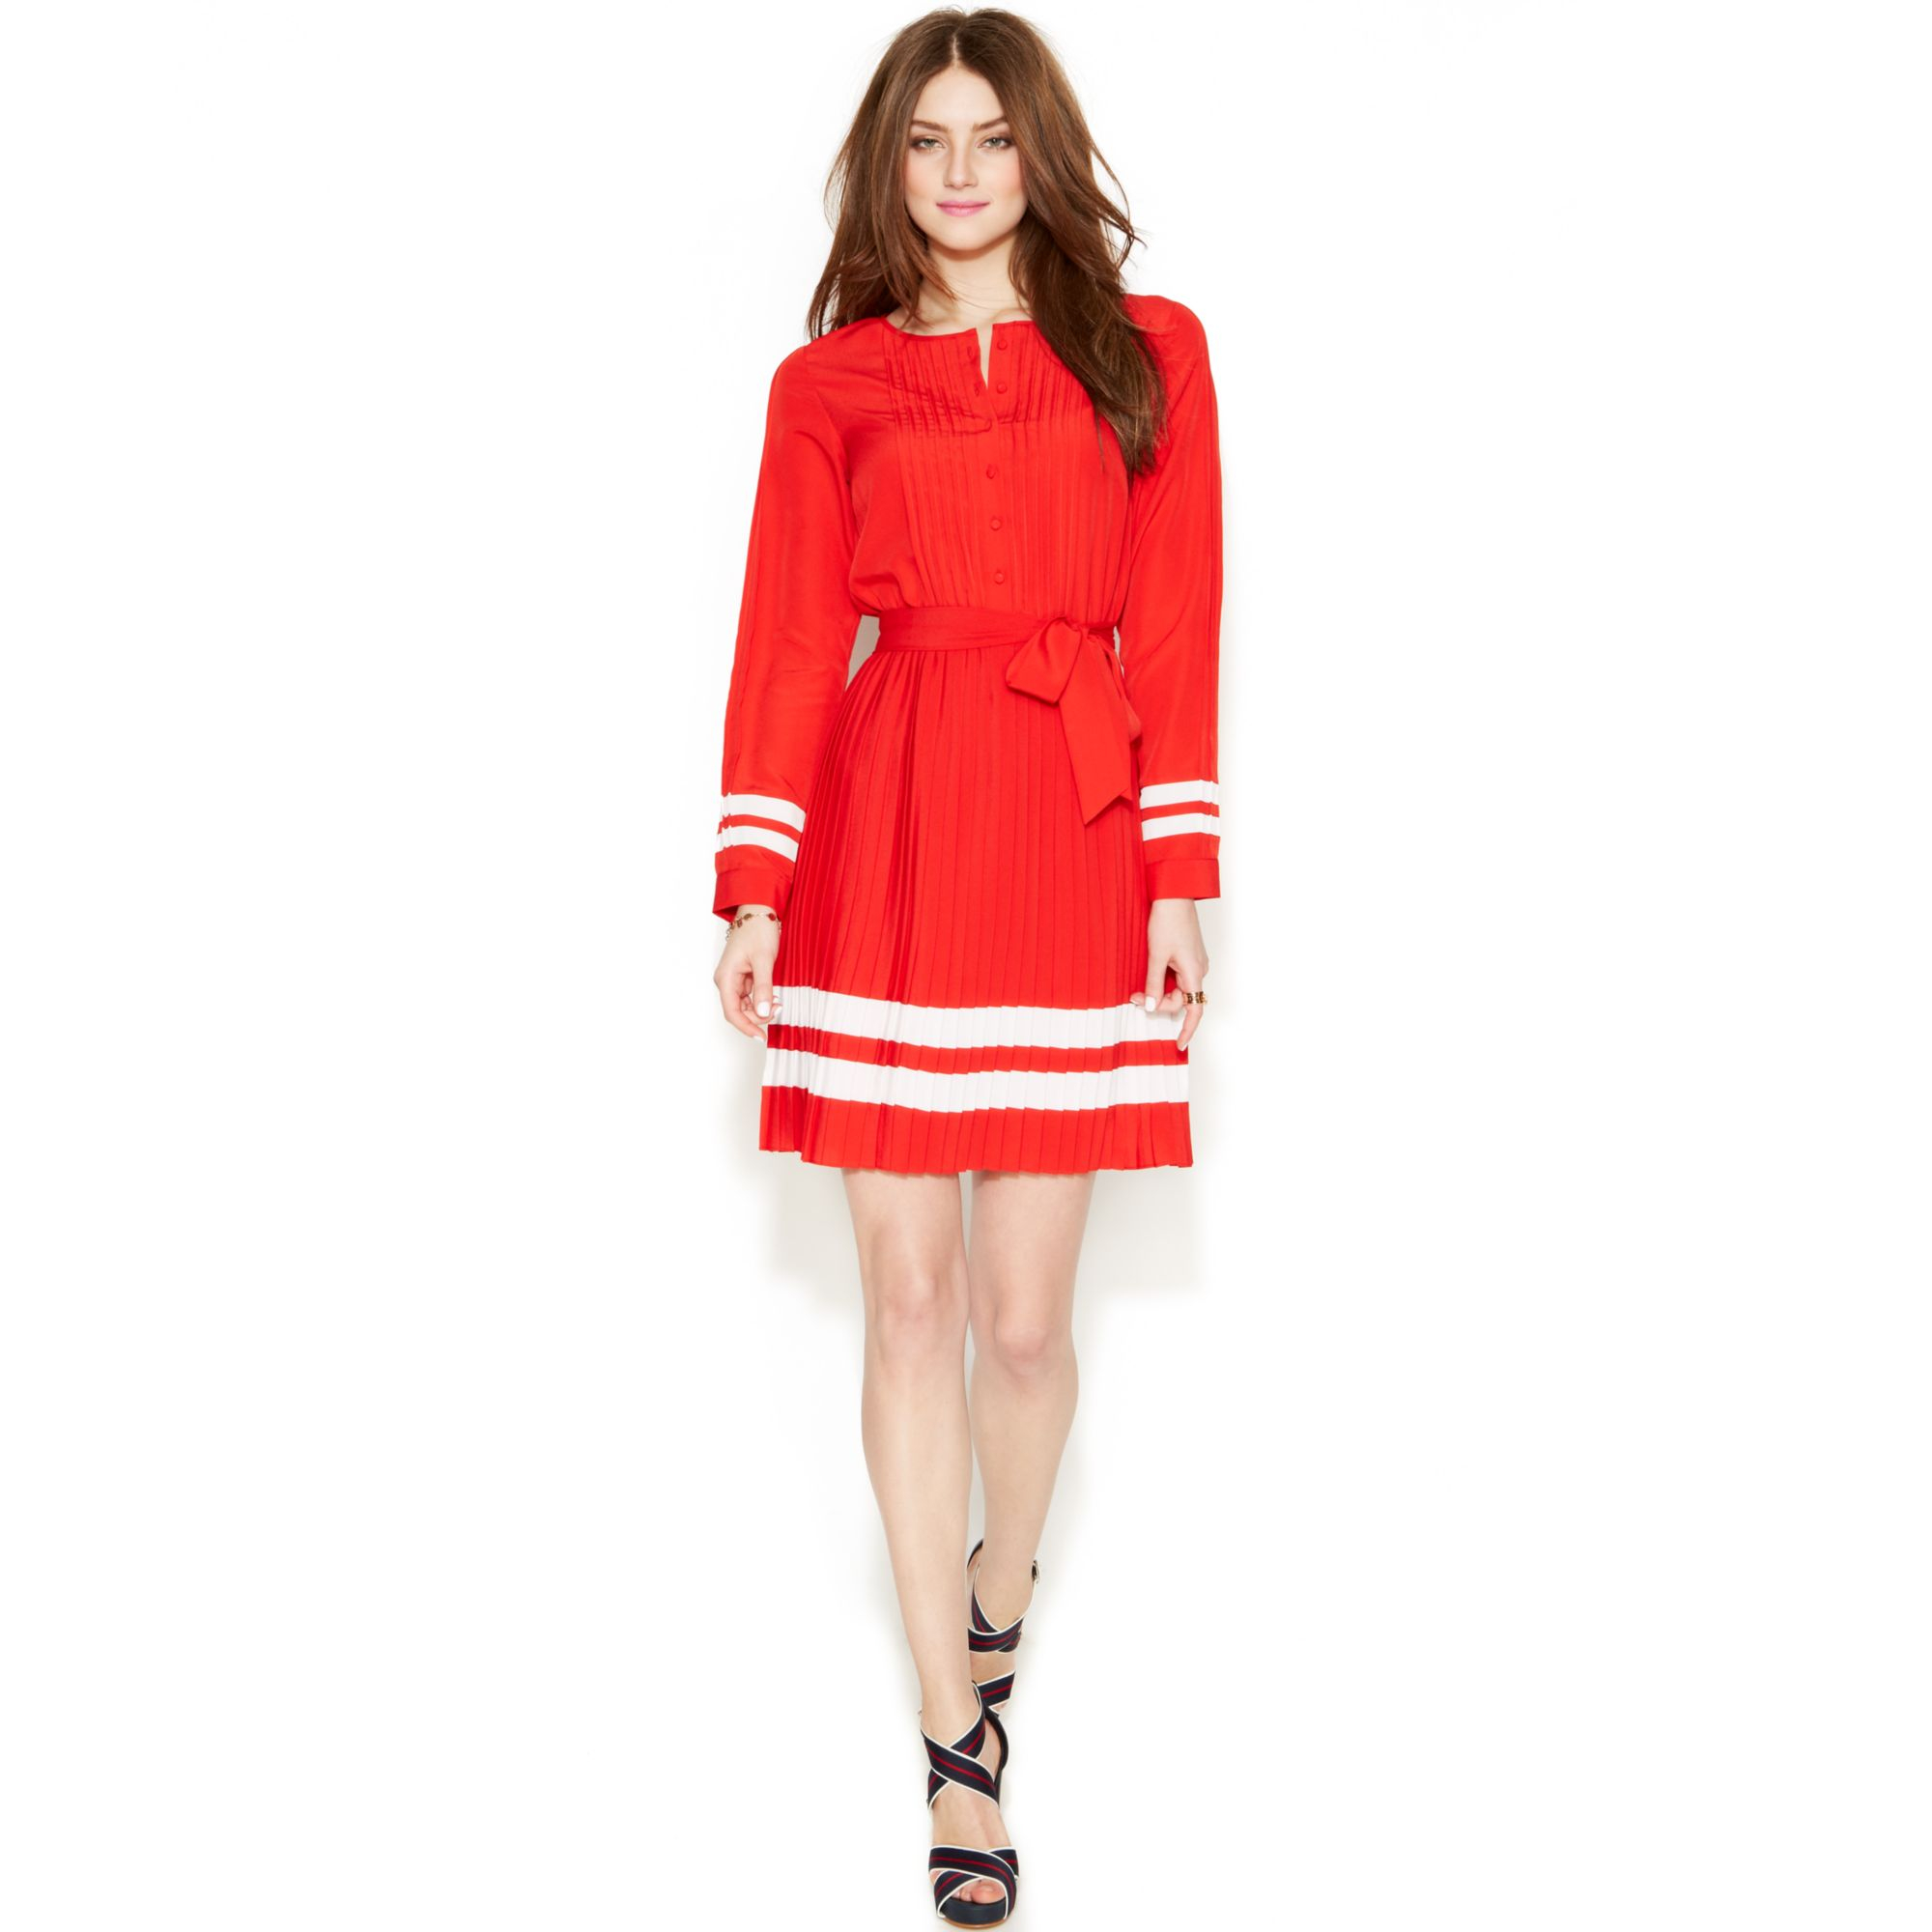 Tommy Hilfiger Zooey Deschanel For Pleated Dress In Red Lyst